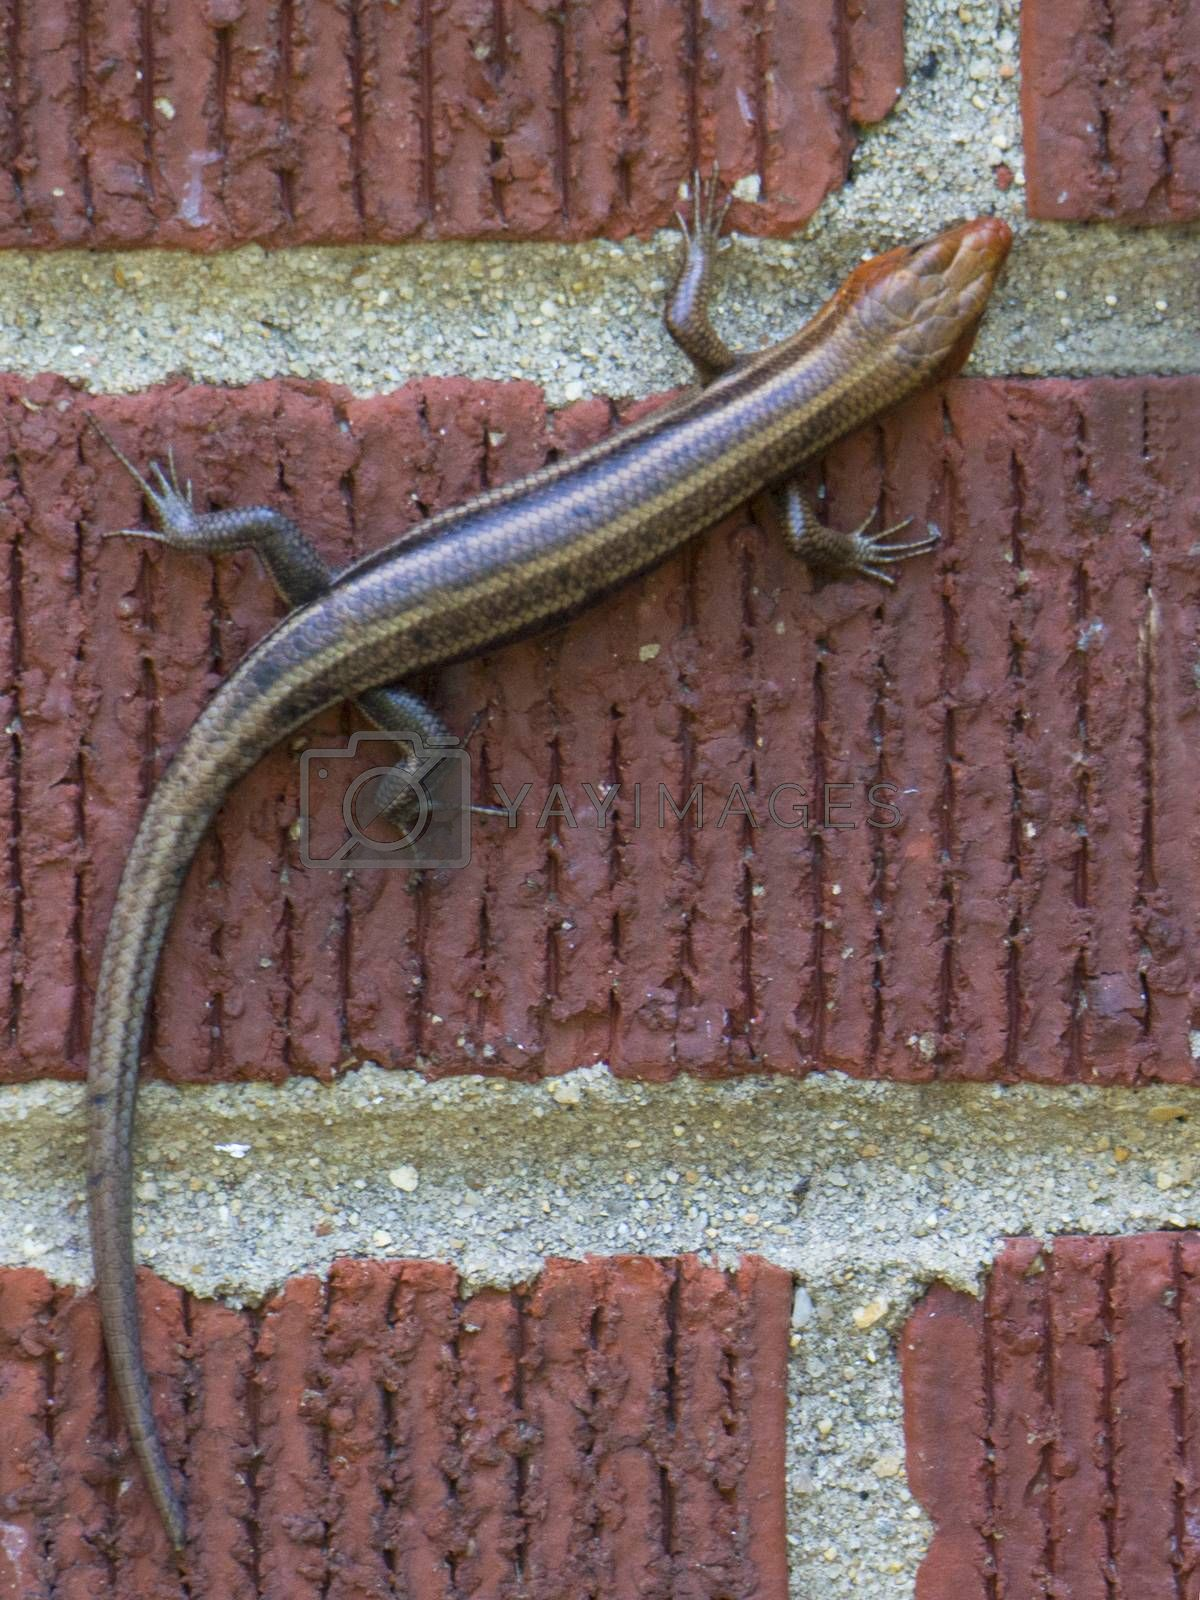 Brown lizard clings to red brick wall.